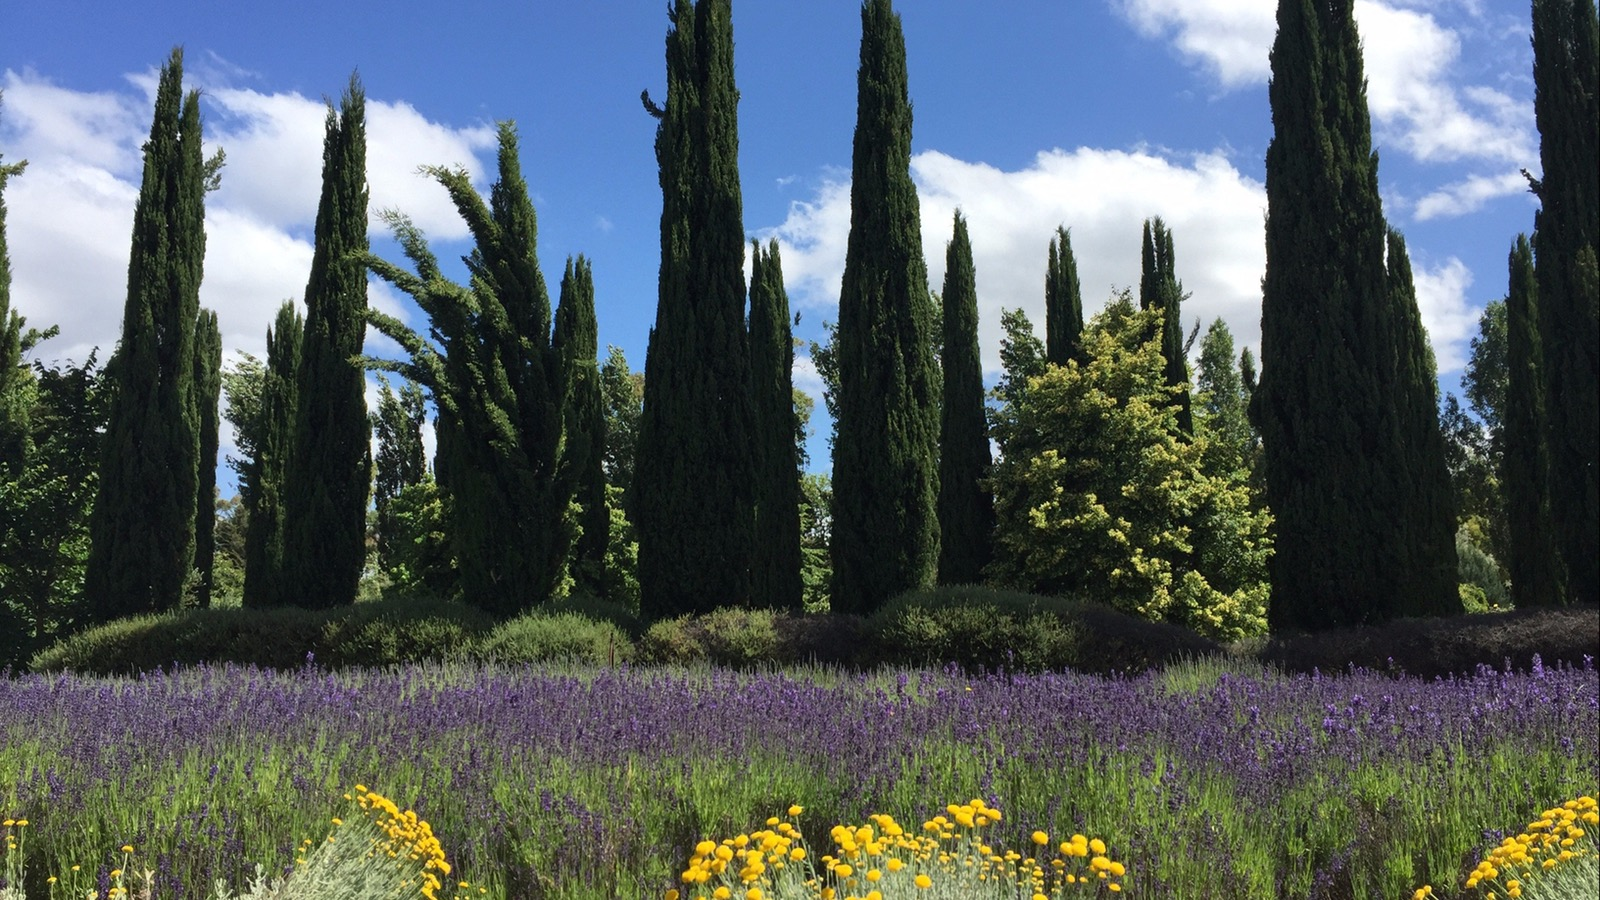 Fields of lavender, flowers and pines with blue skies